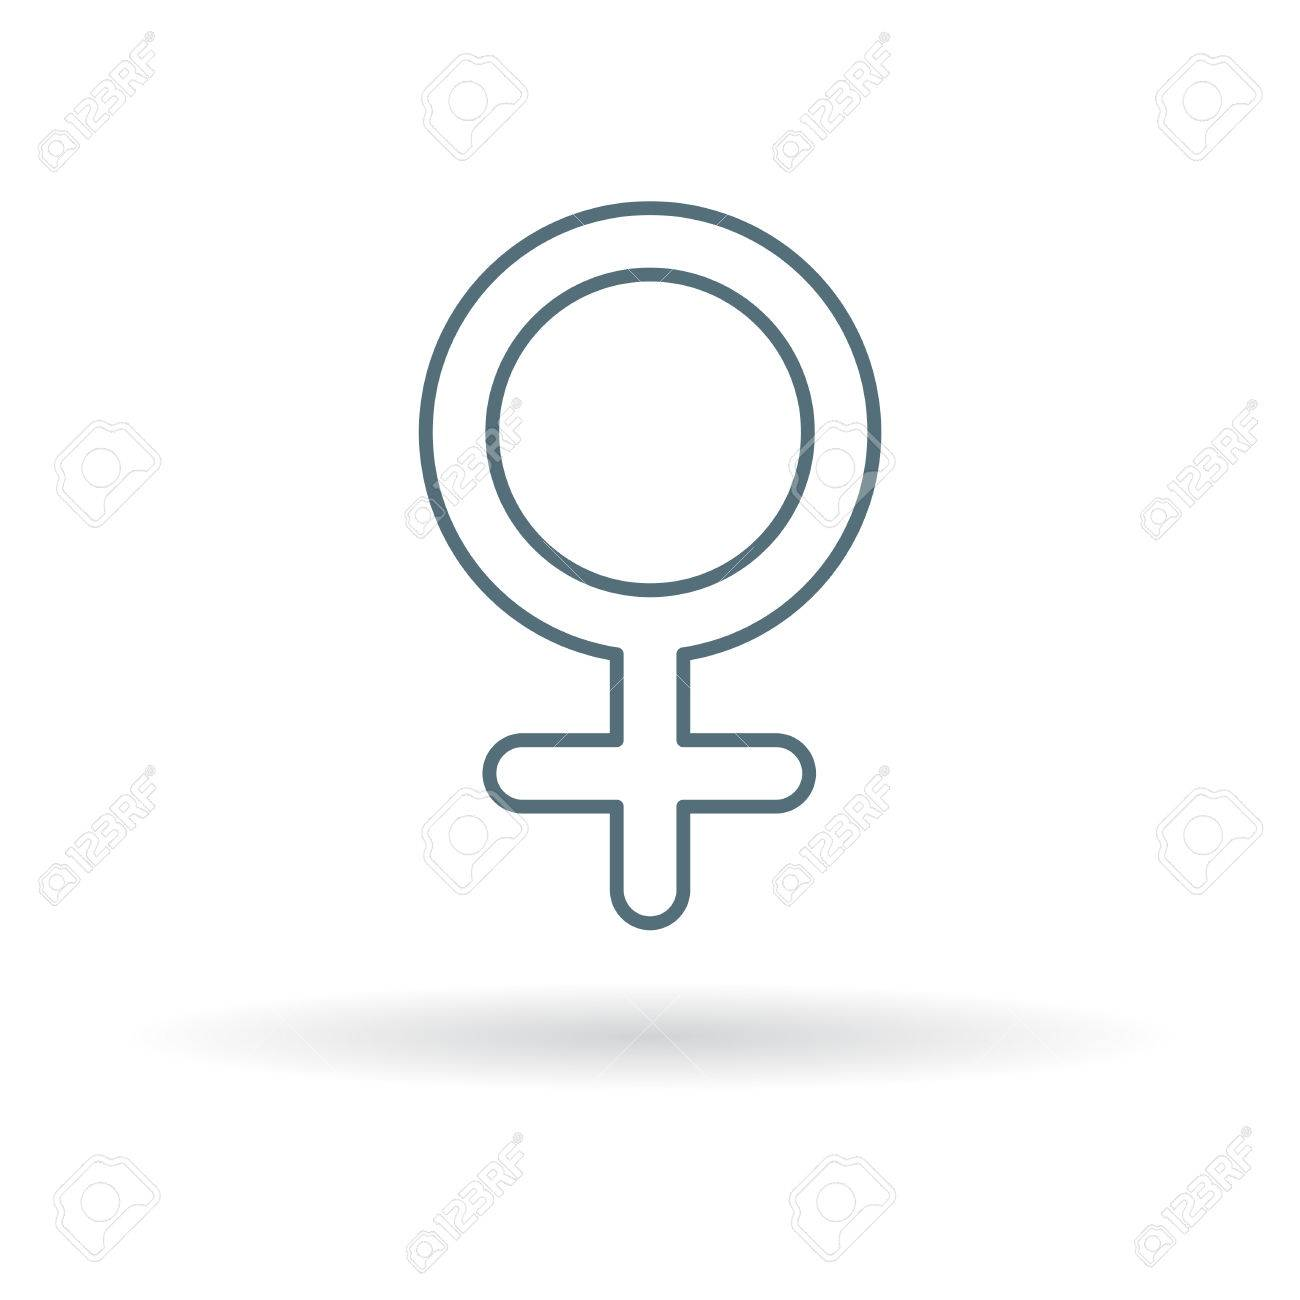 Female Gender Icon Female Gender Sign Female Gender Symbol